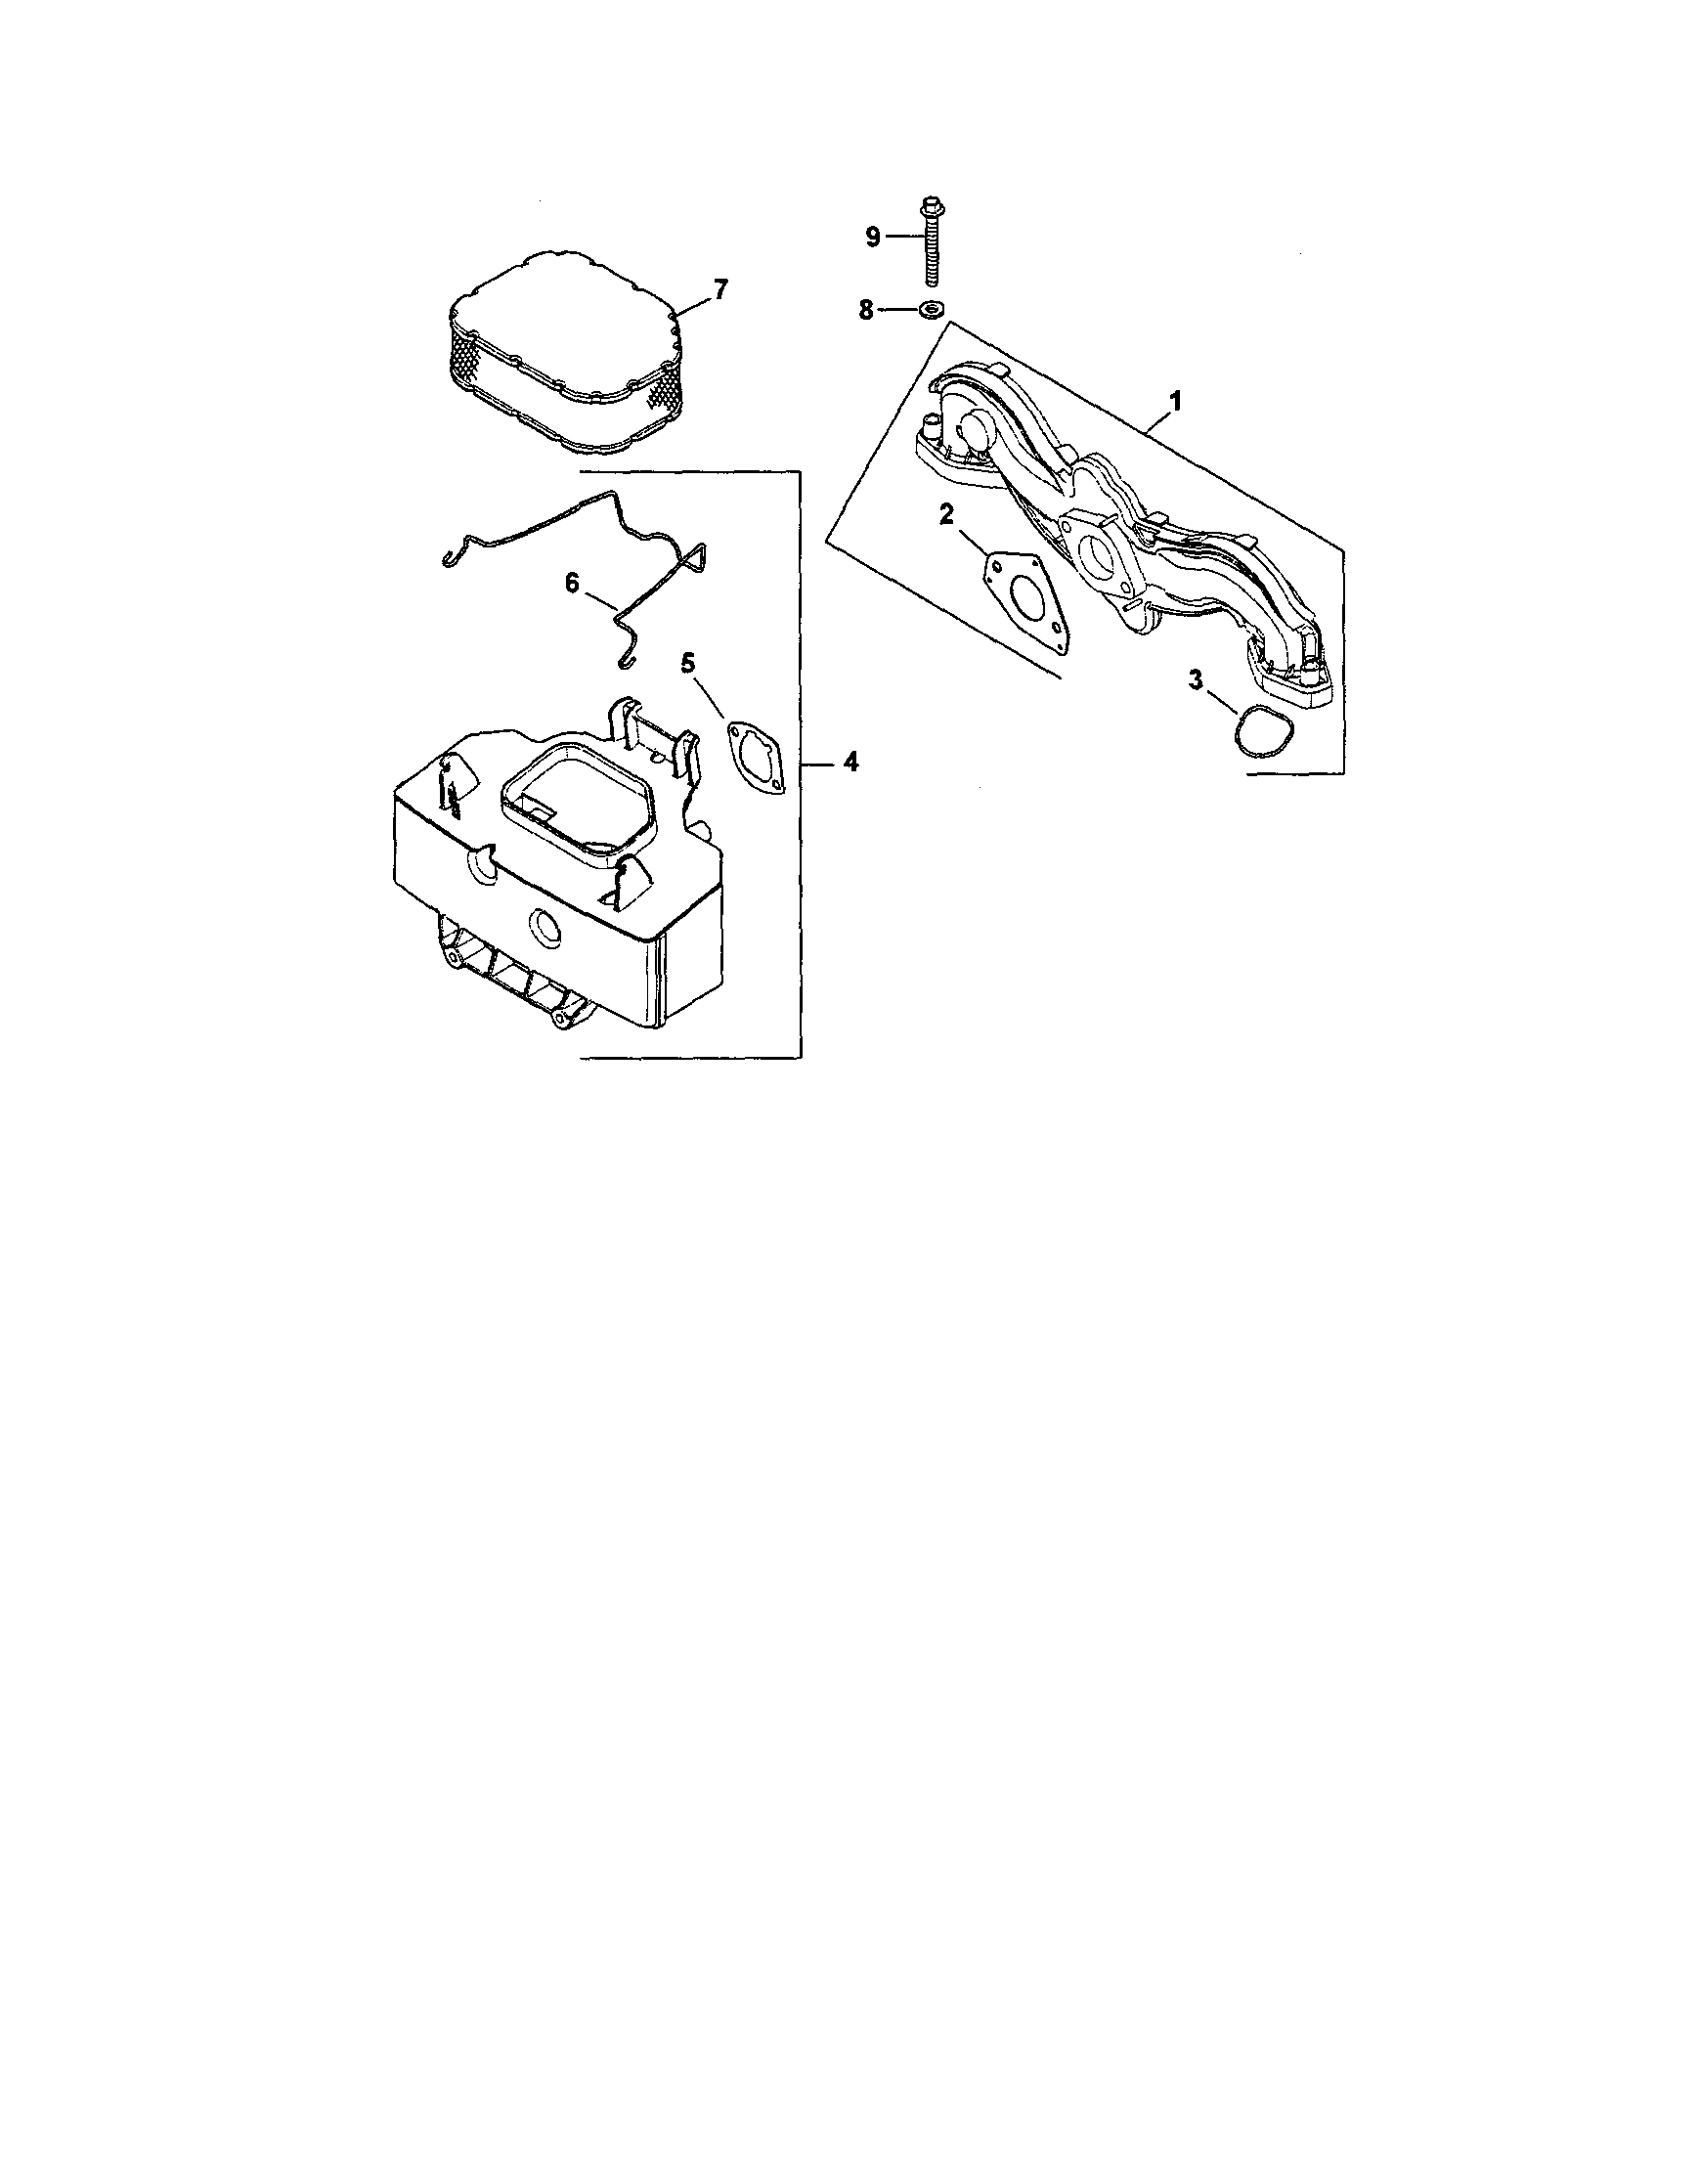 Kohler model sv735 0016 engine genuine parts model sv735 0017 kohler engine wiring diagram